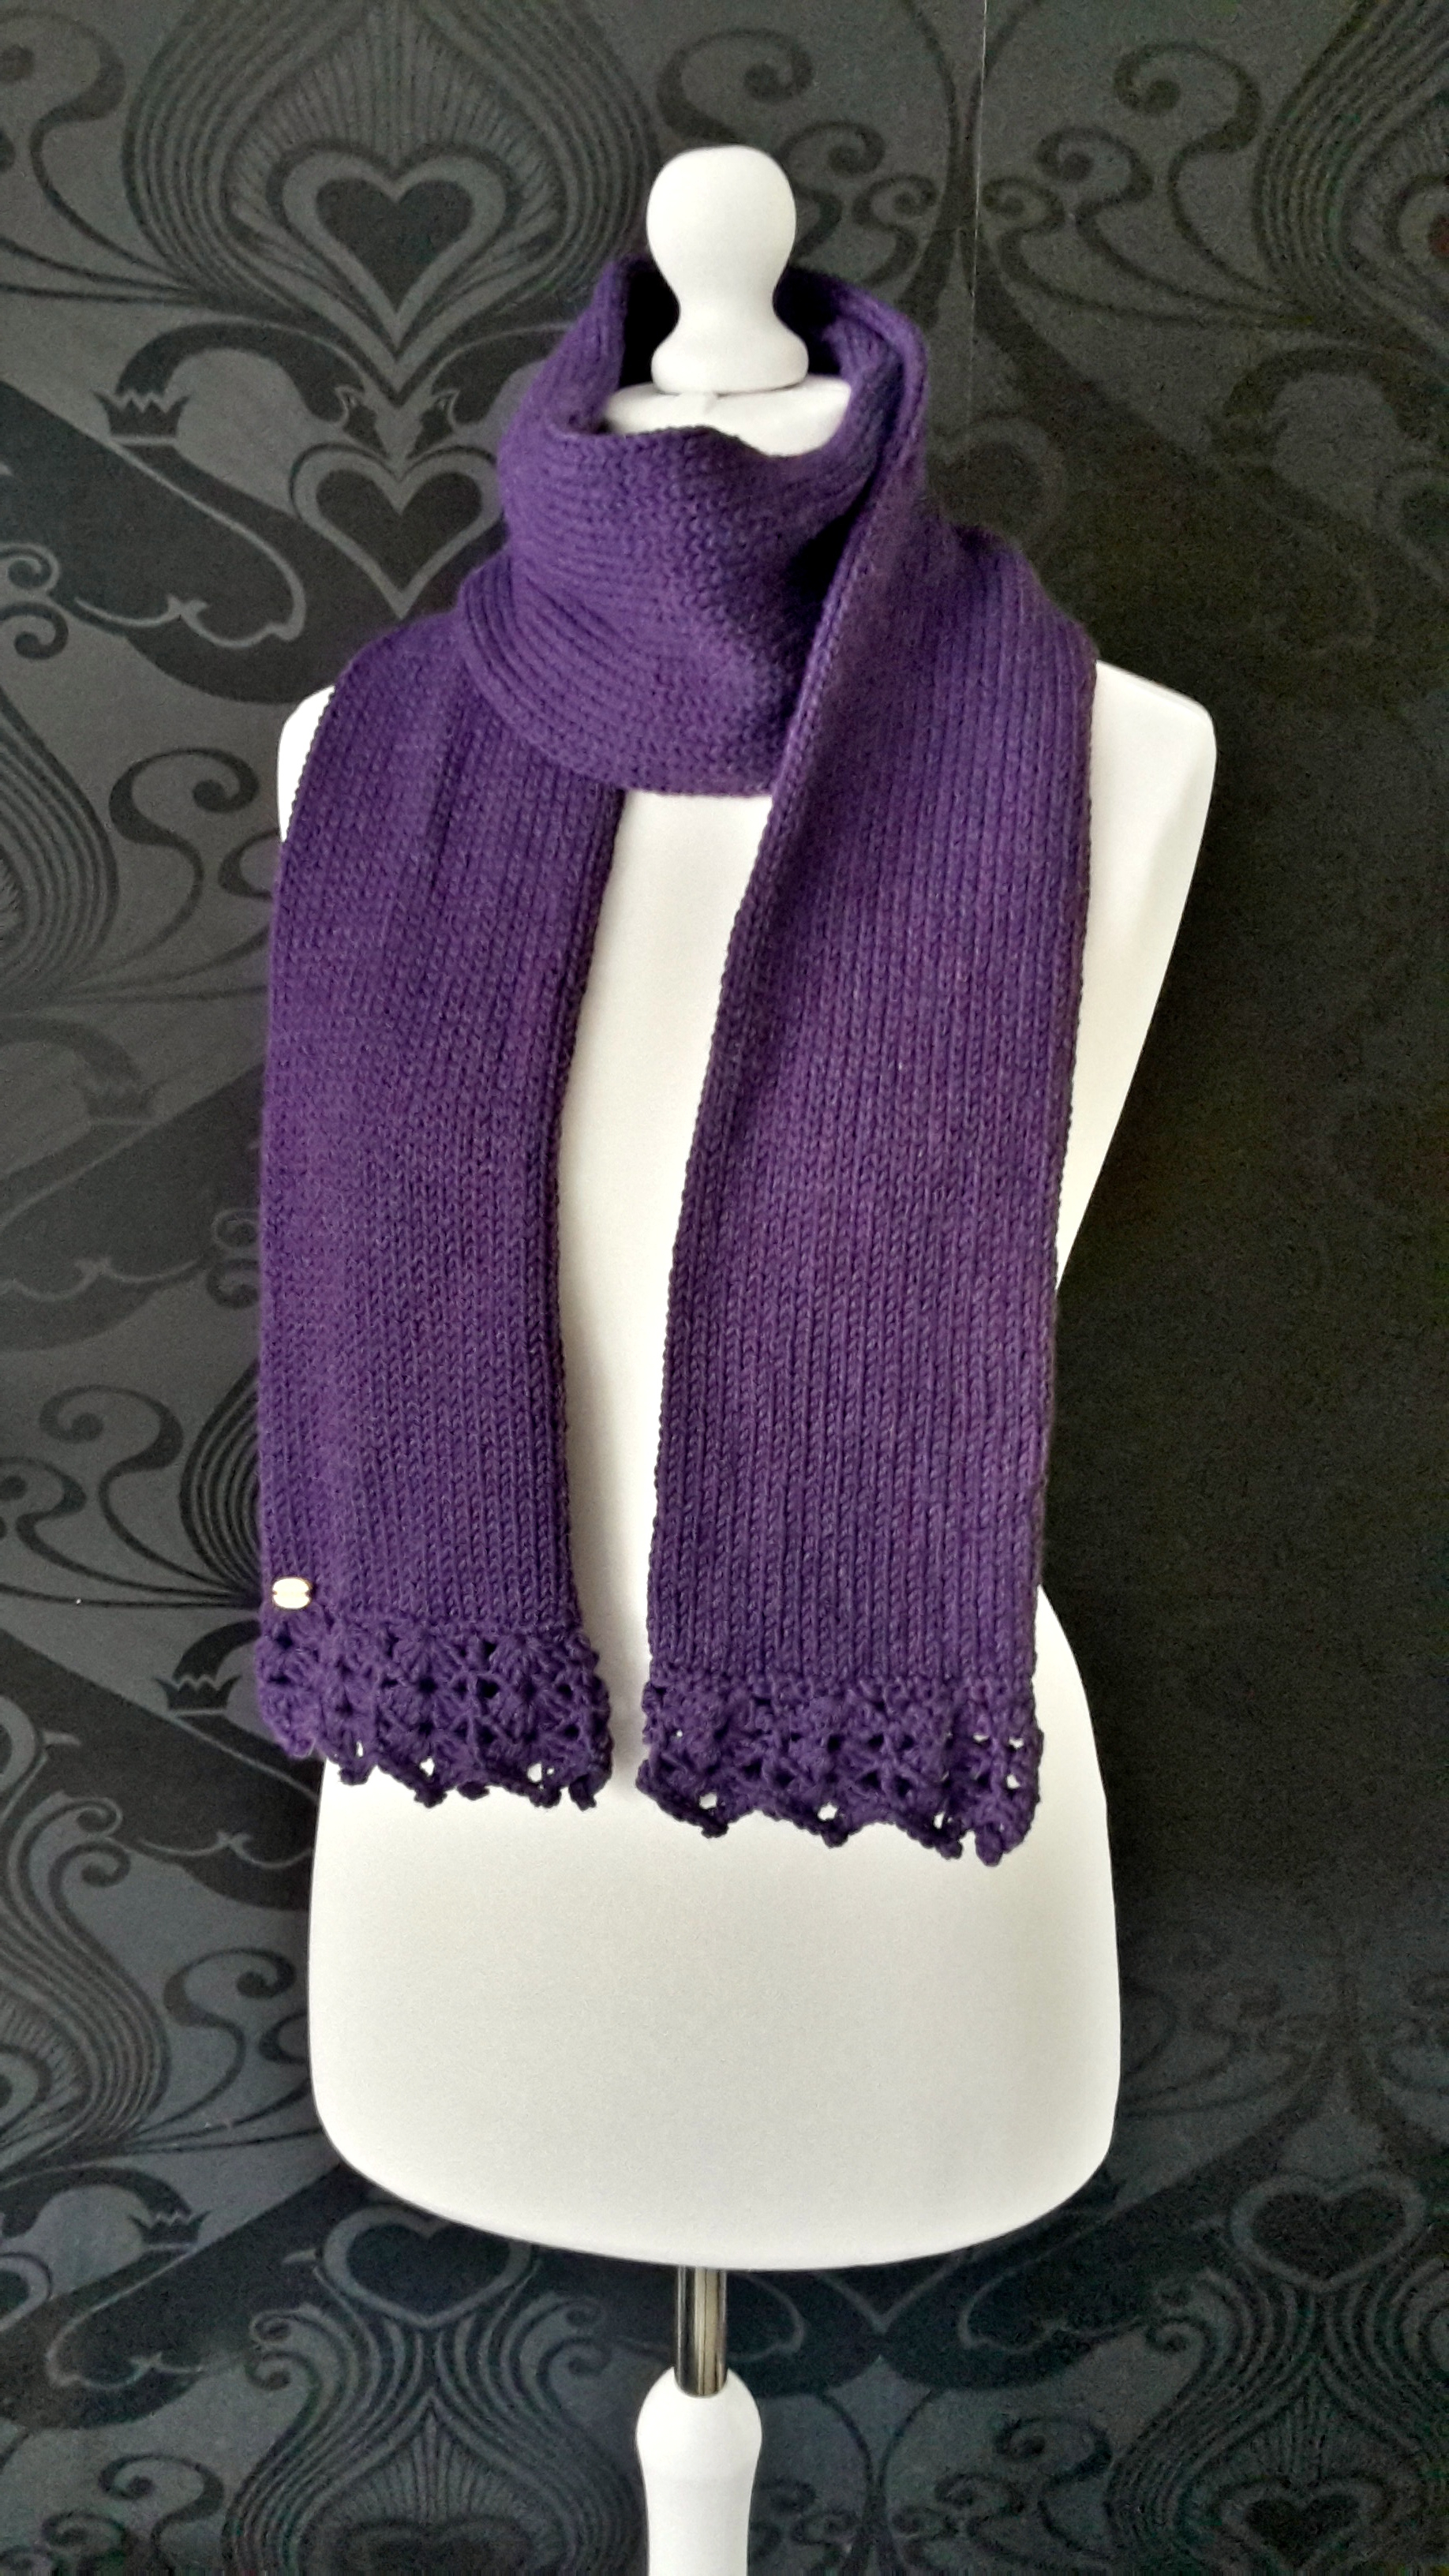 Knitted Wool Scarf With Crochet Edging Knitting And